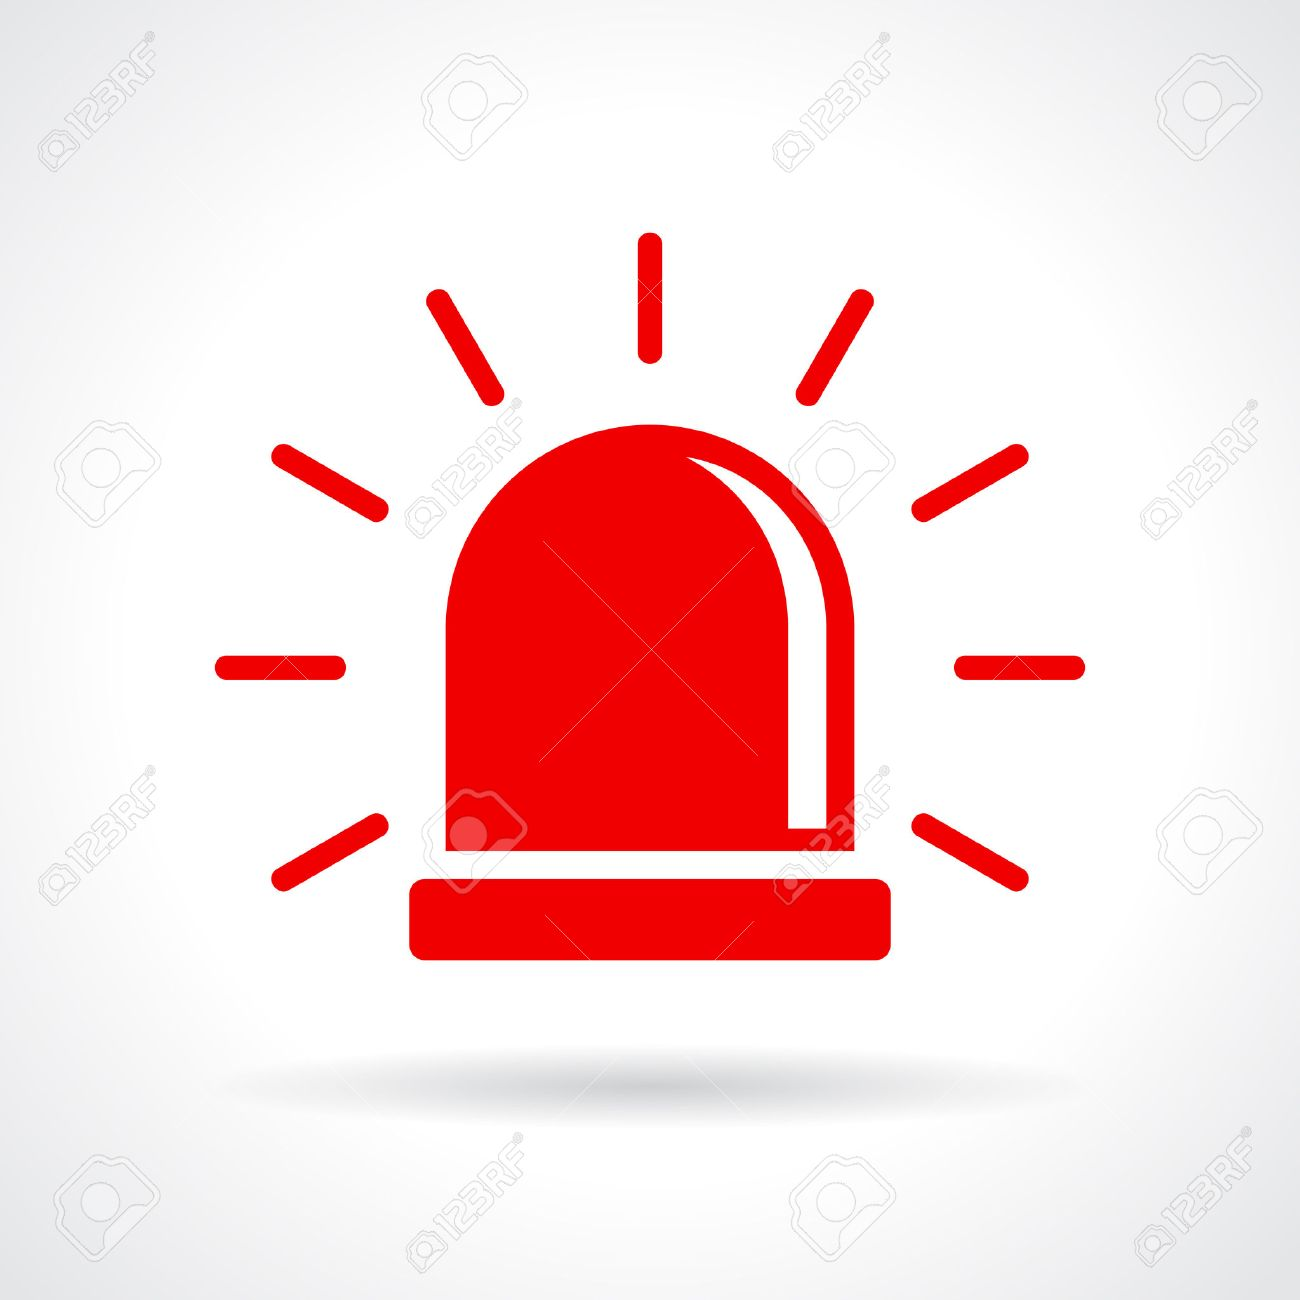 Red Flashing Light Icon Royalty Free Cliparts, Vectors, And Stock ... for Warning Light Clipart  579cpg